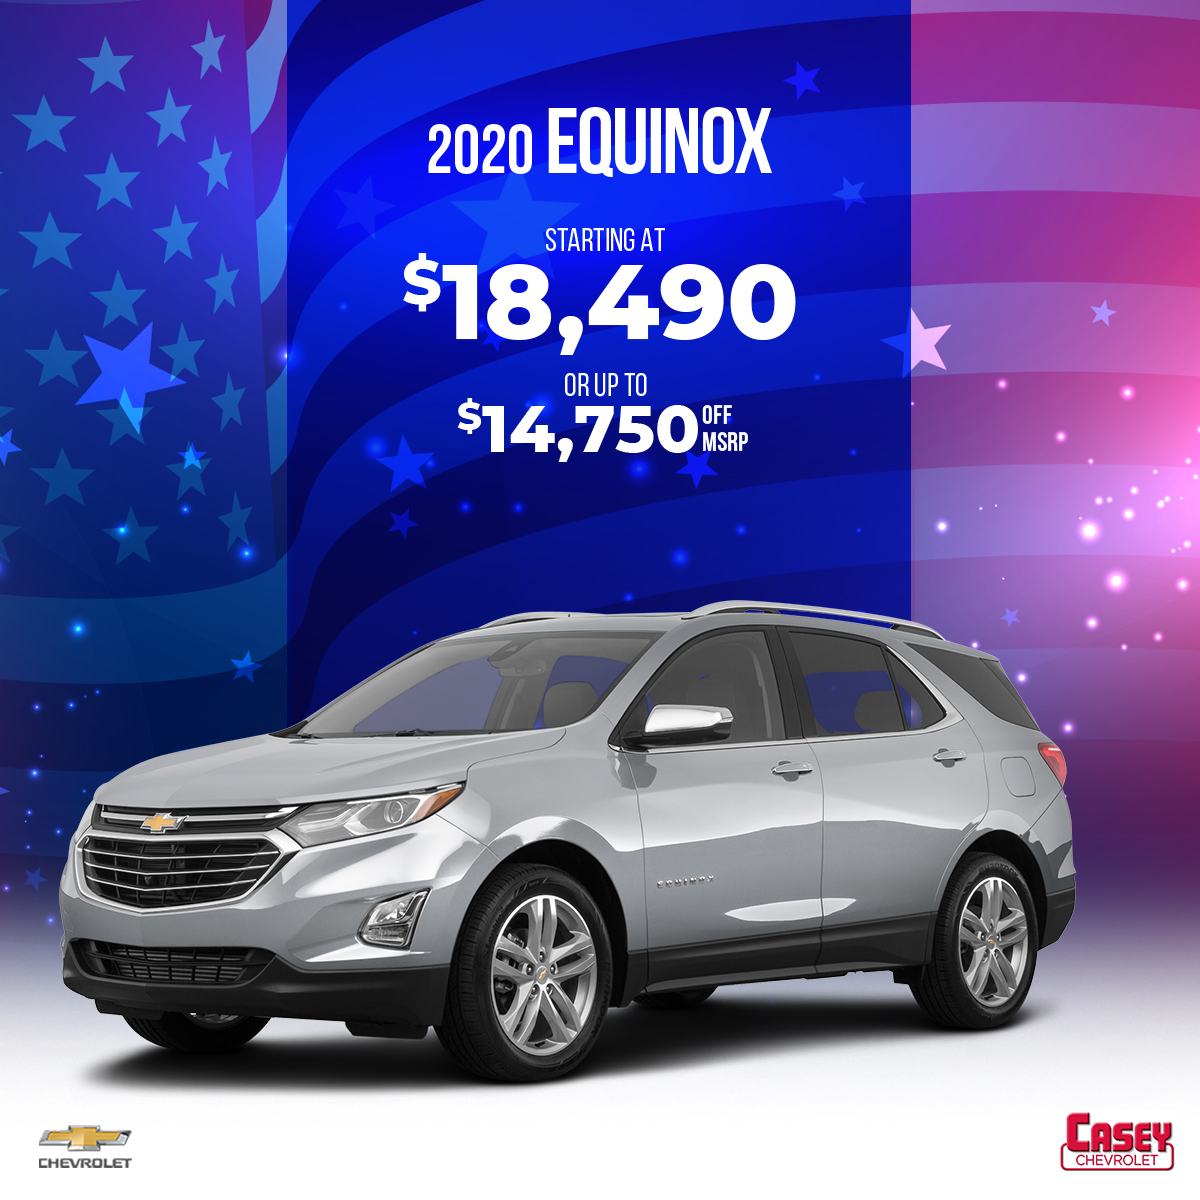 Casey Chevrolet A Twitter When It Comes To Fuel Saving Technology The 2020 Chevrolet Equinox Will Inspire You To Discover New Places Save Up To 14 750 Off Msrp When You Choose Casey Chevrolet